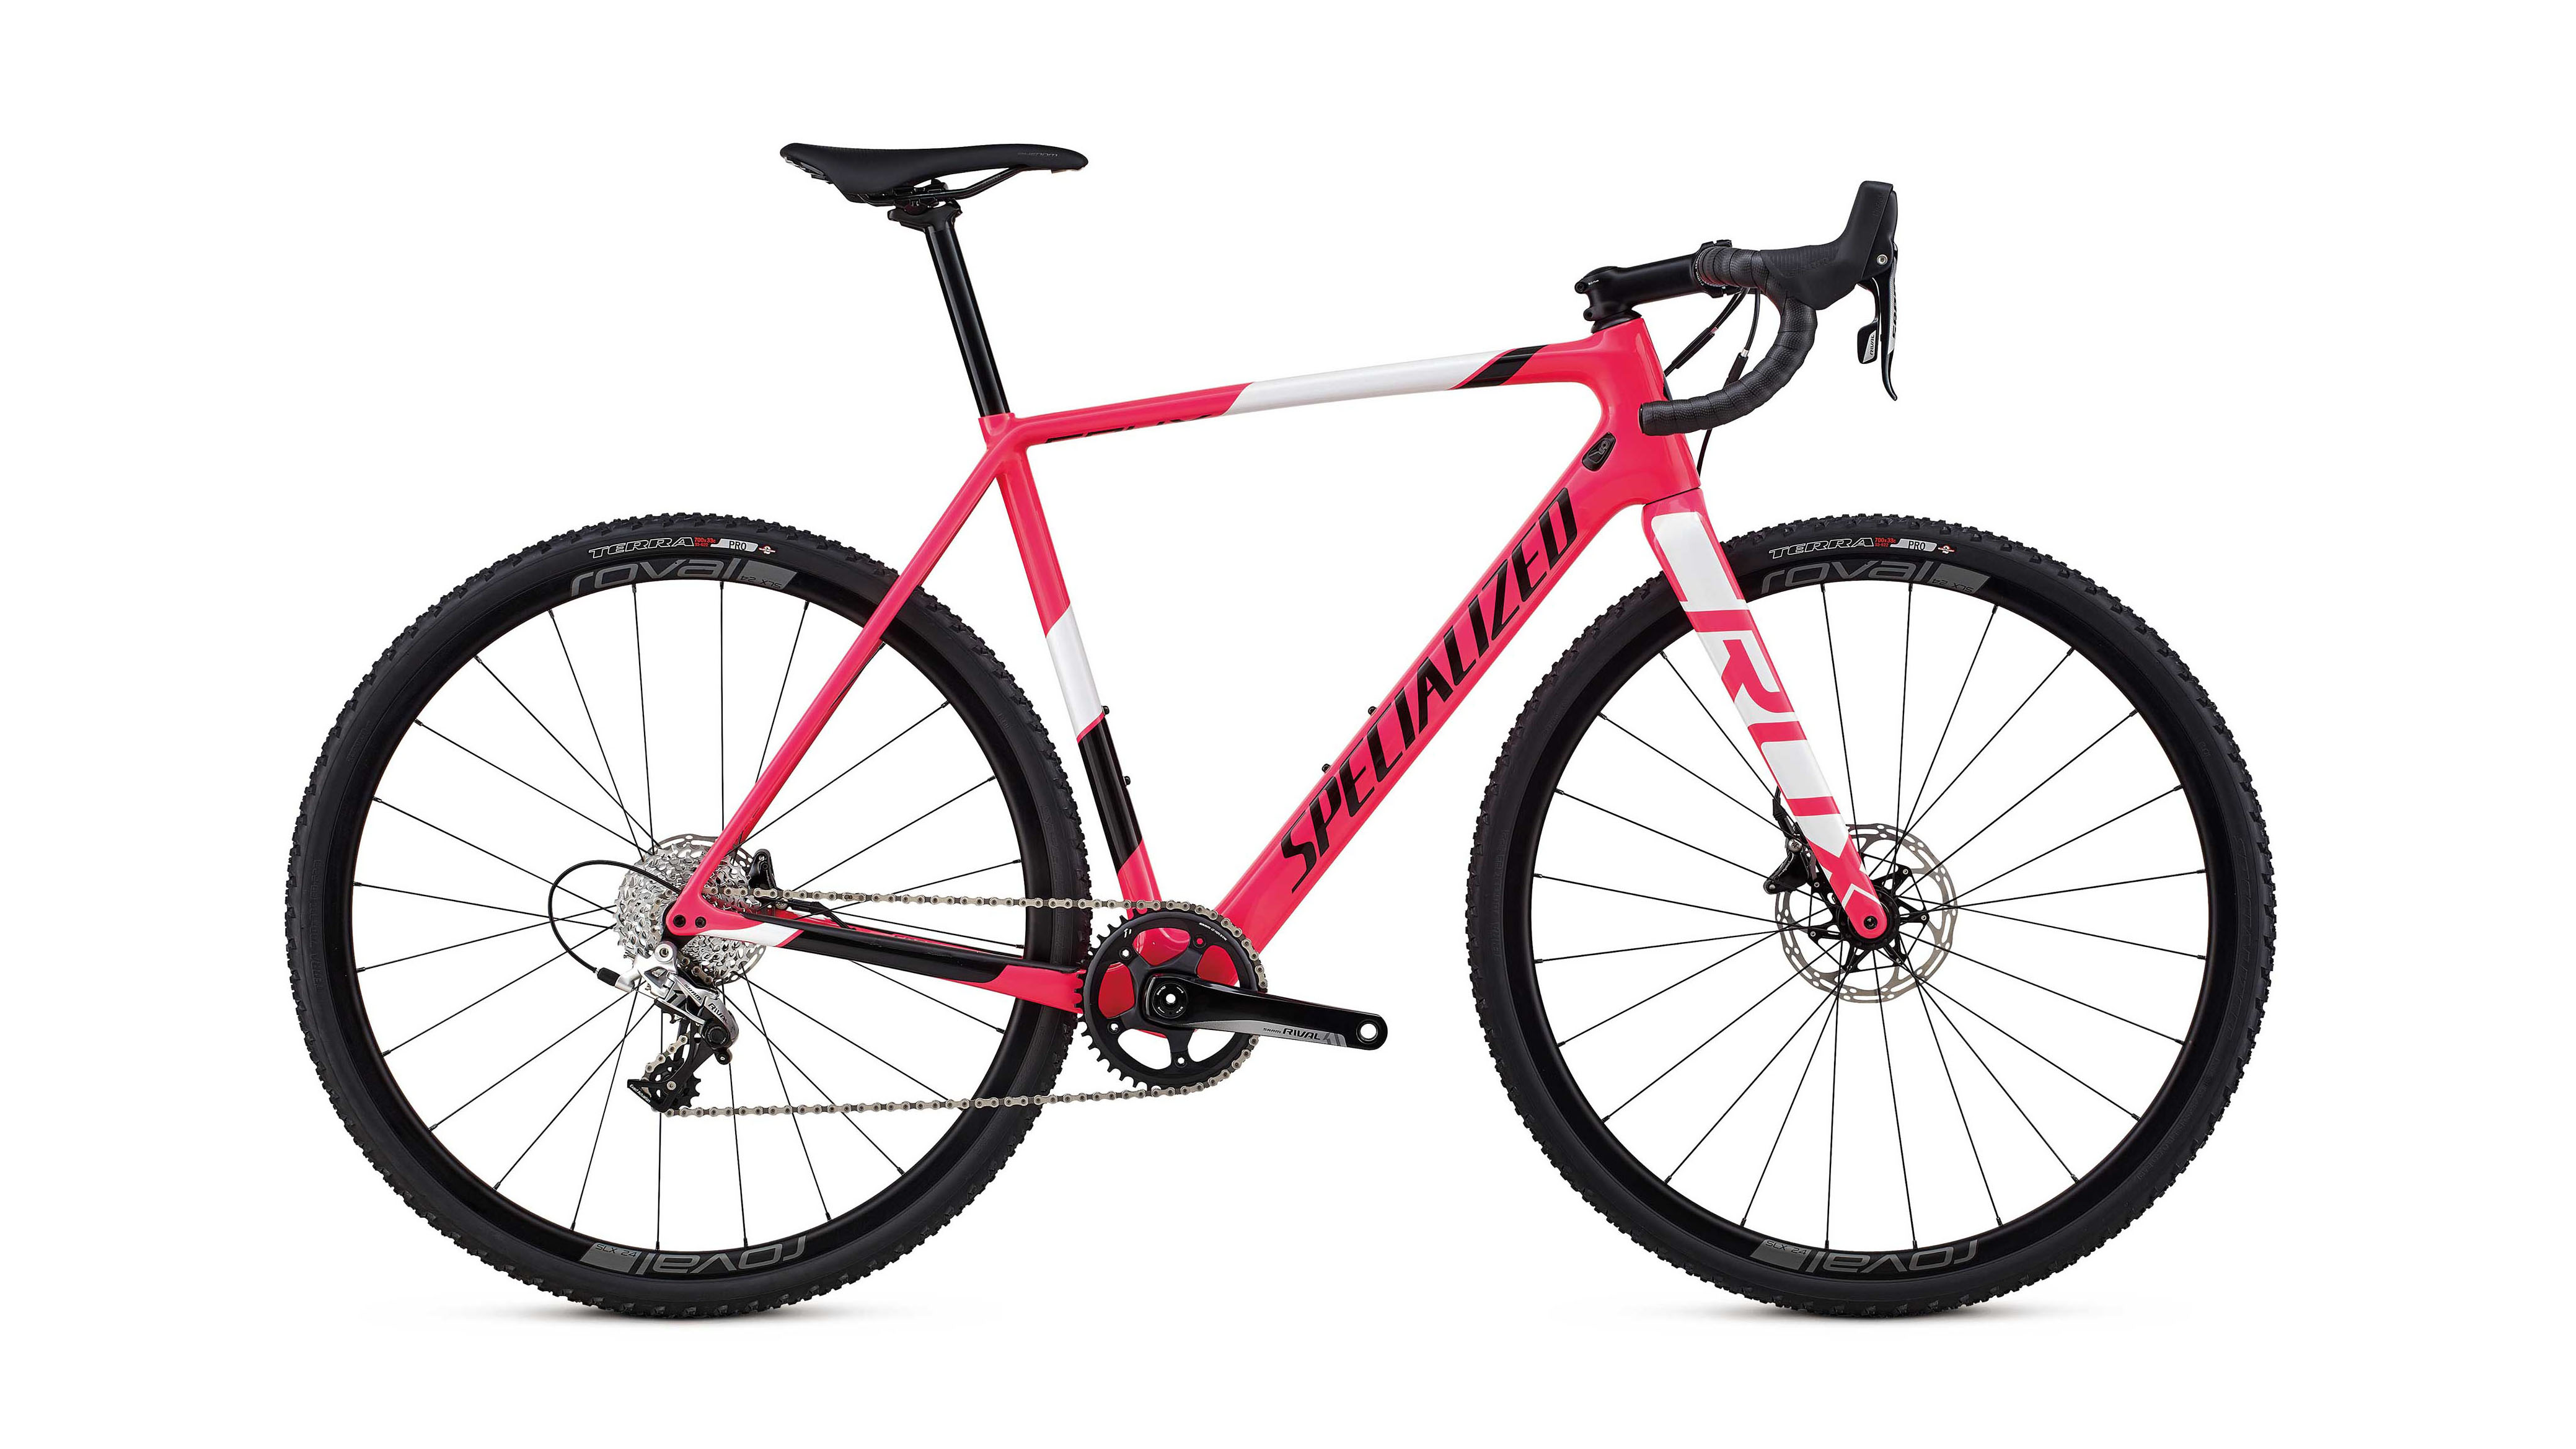 Best cyclocross bike 2018: How to choose the perfect cyclocross bike ...